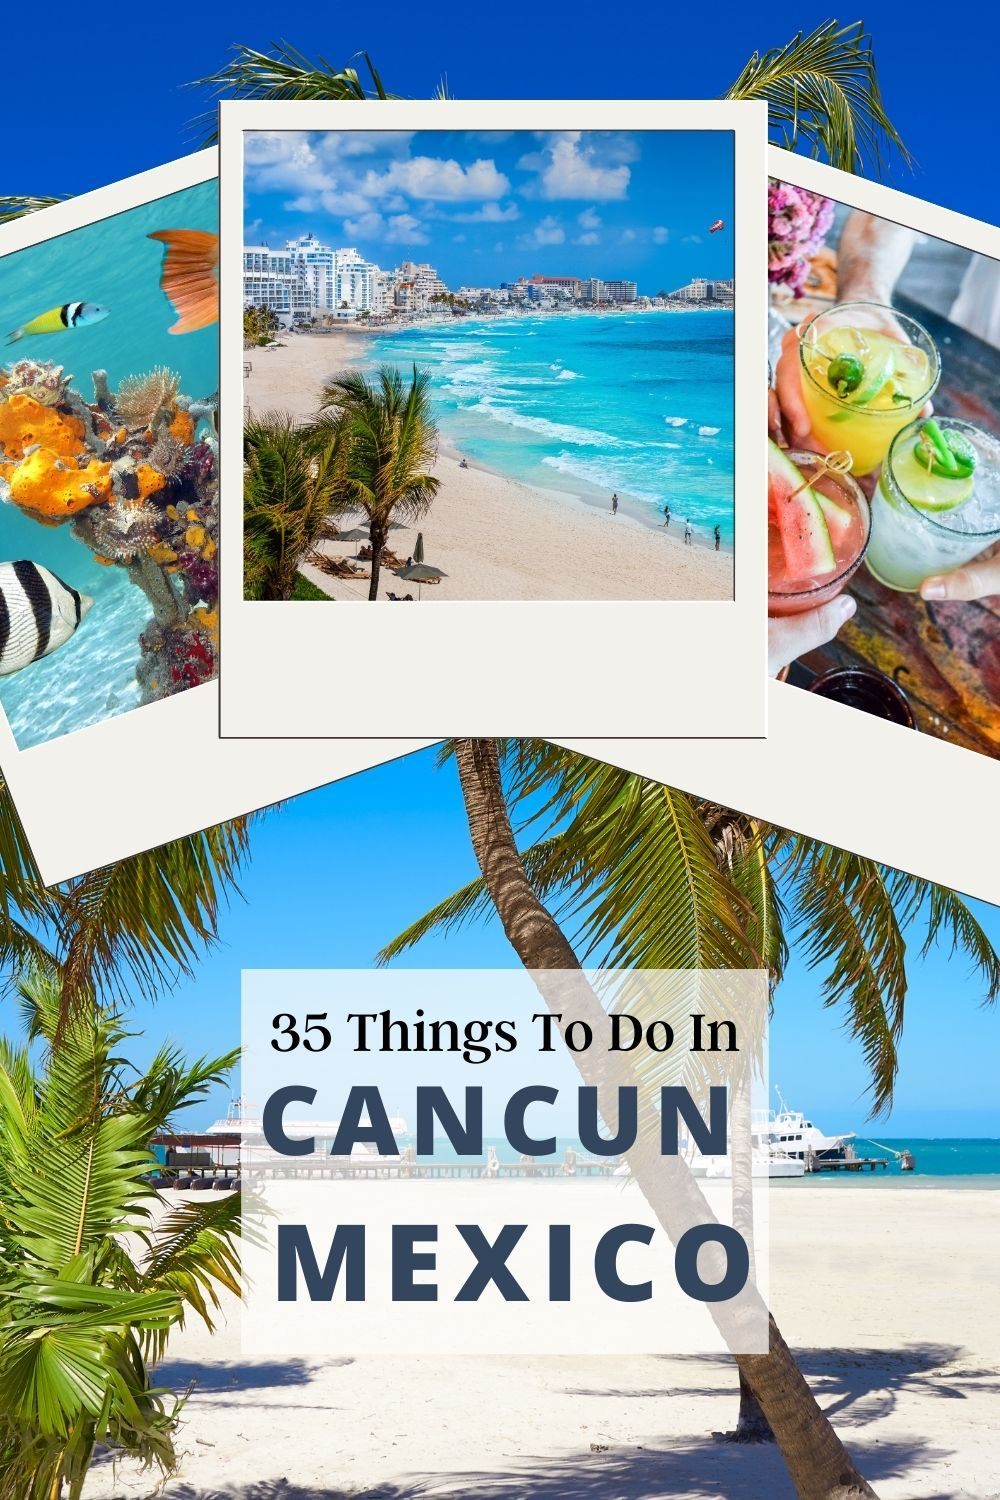 35 Things To Do In Cancun Mexico The Ultimate List Live Dream Discover In 2020 Tropical Travel Destinations Tropical Travel Mexico Travel Guides